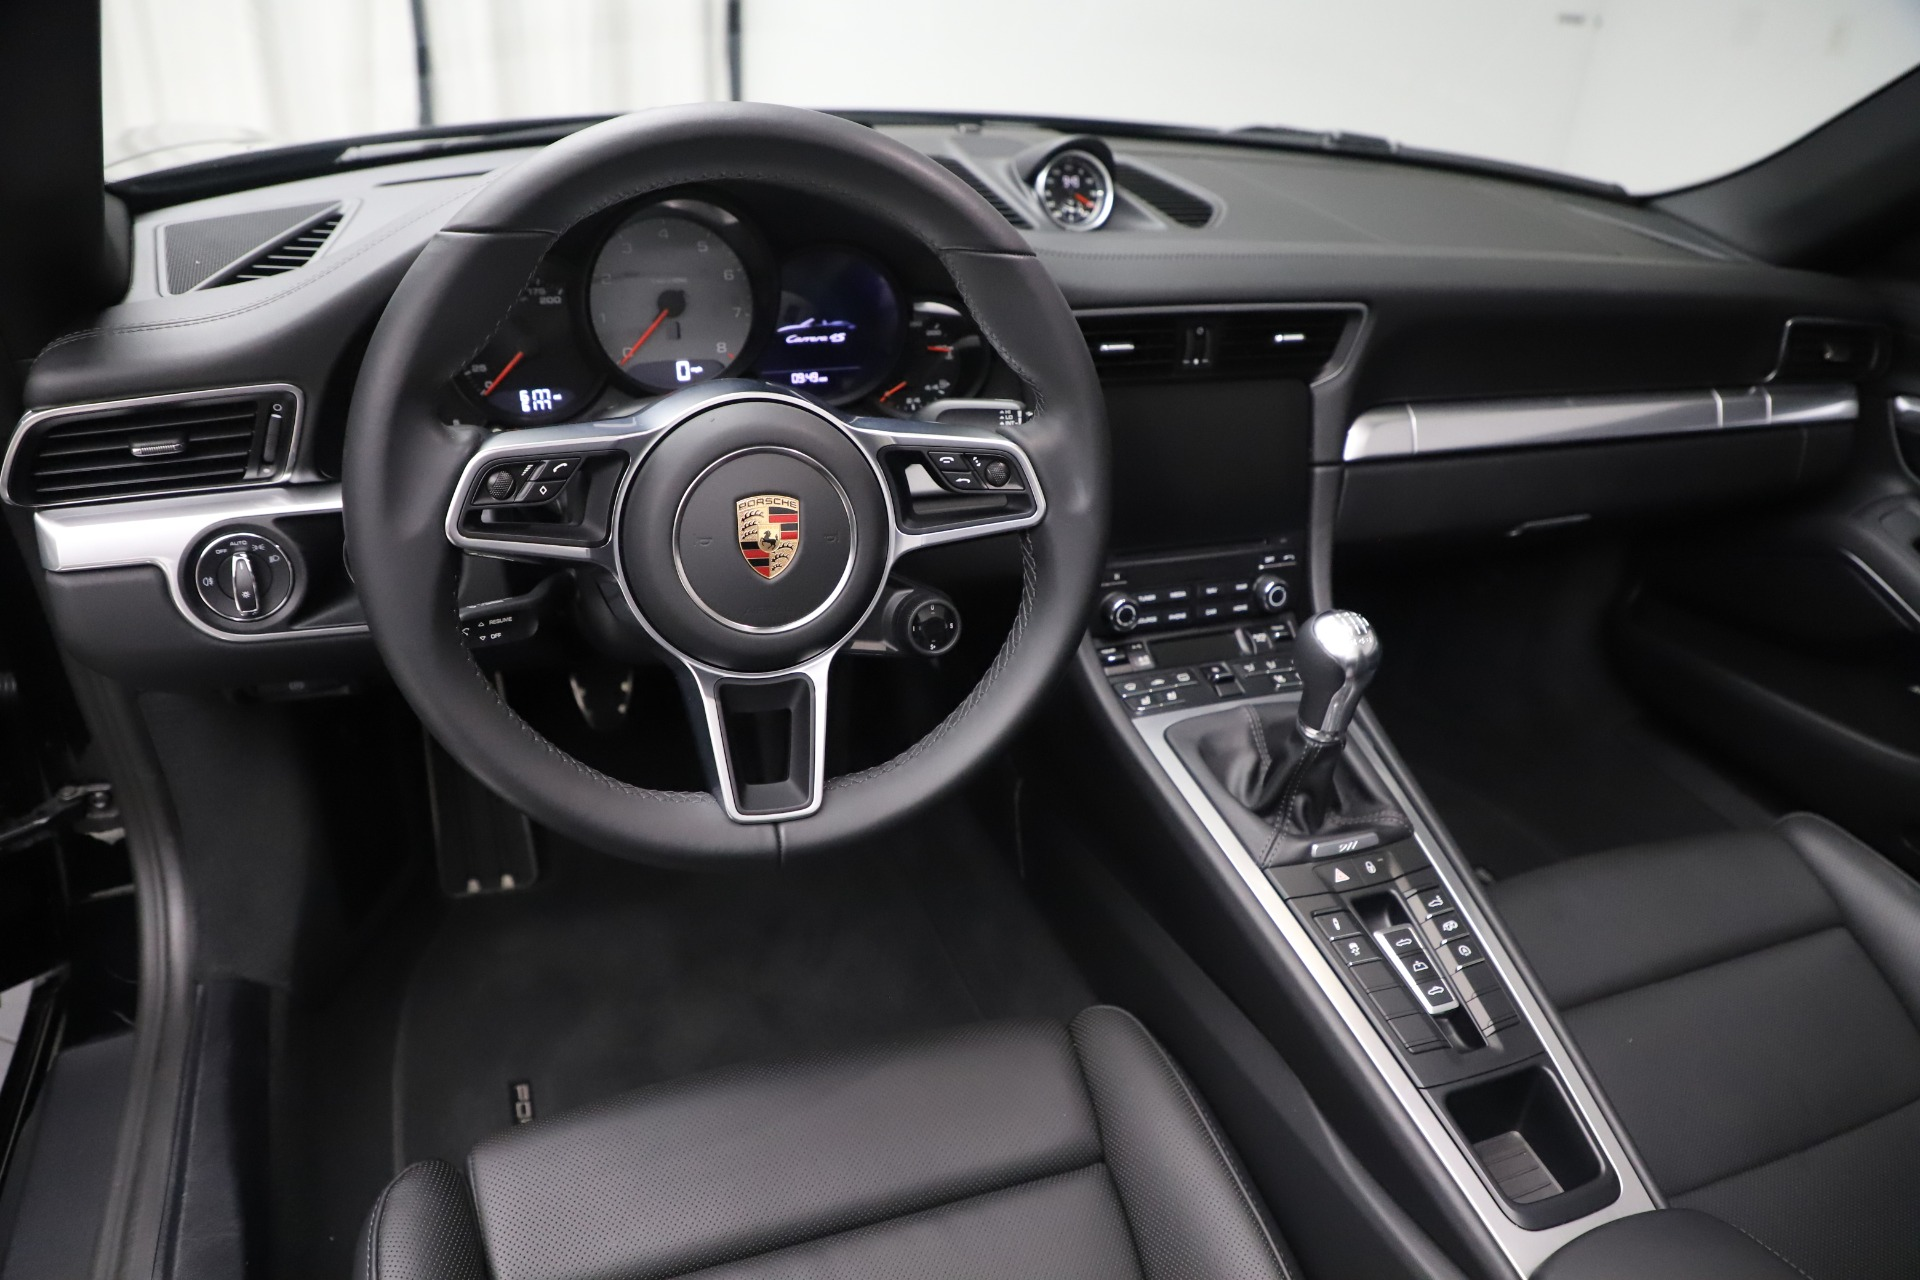 Used 2017 Porsche 911 Carrera 4S For Sale In Greenwich, CT 3562_p18